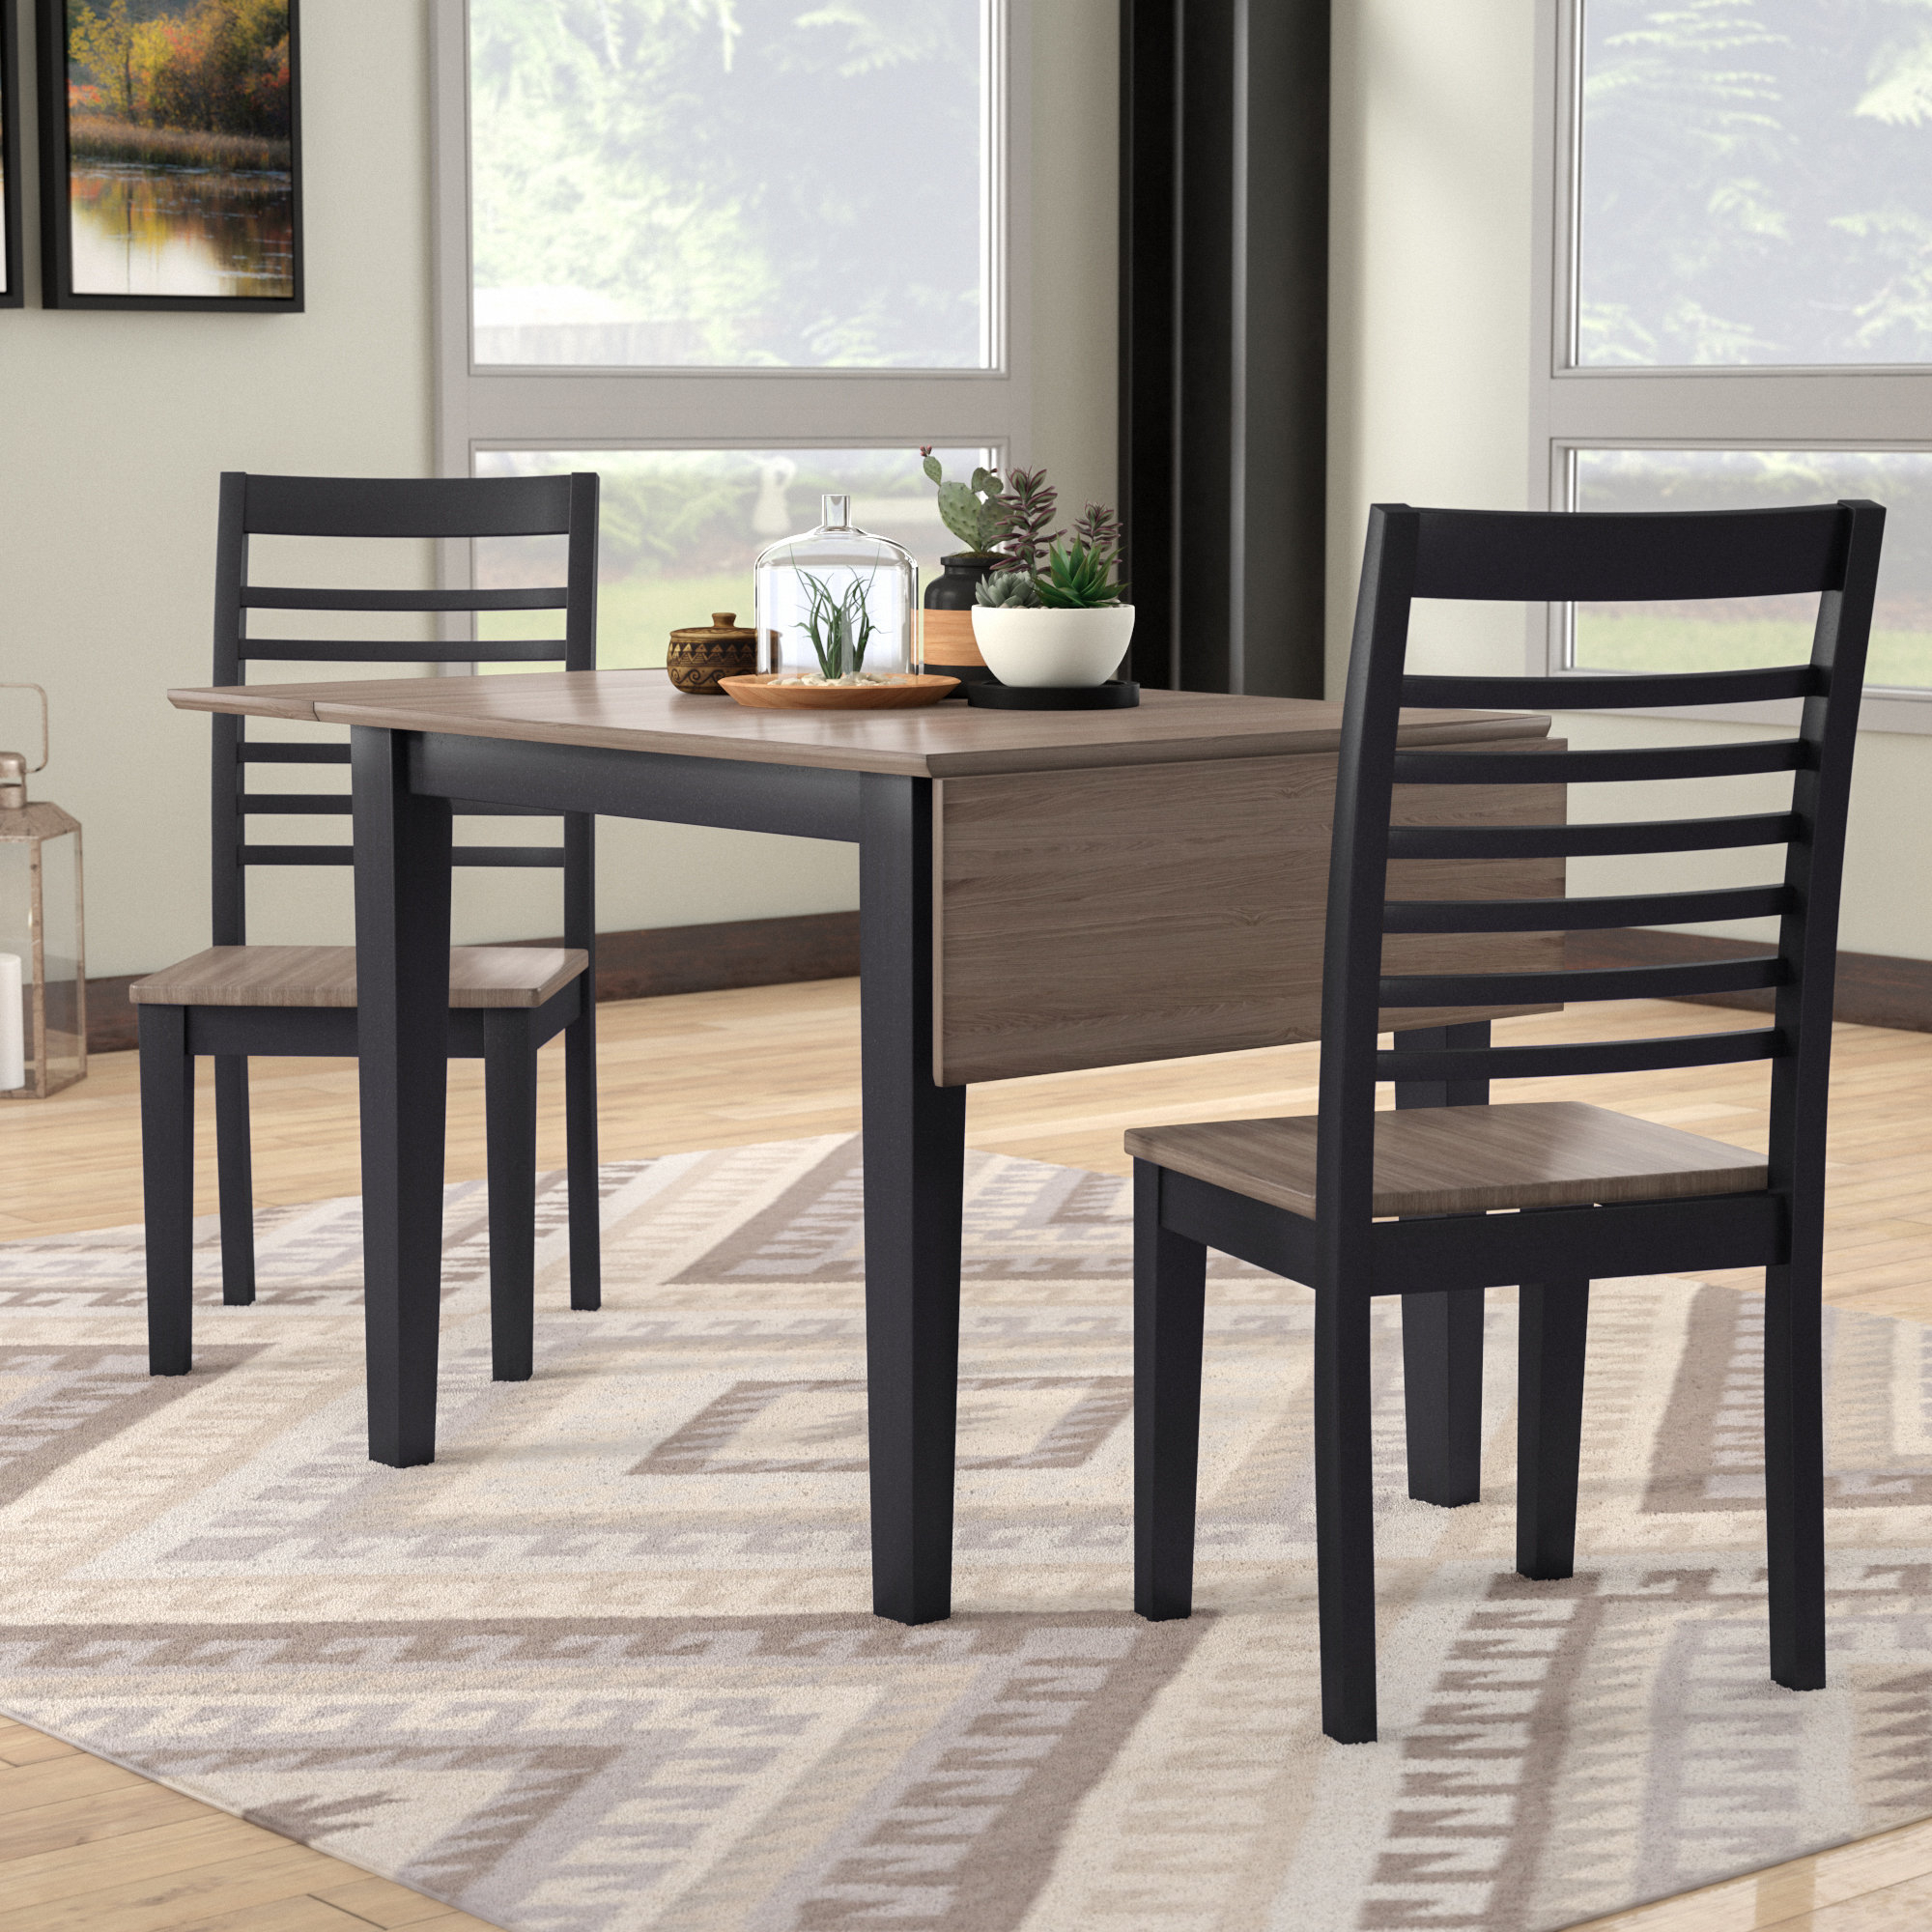 Union Rustic Shepherd 3 Piece Dining Set Pertaining To Recent Kernville 3 Piece Counter Height Dining Sets (Image 17 of 20)